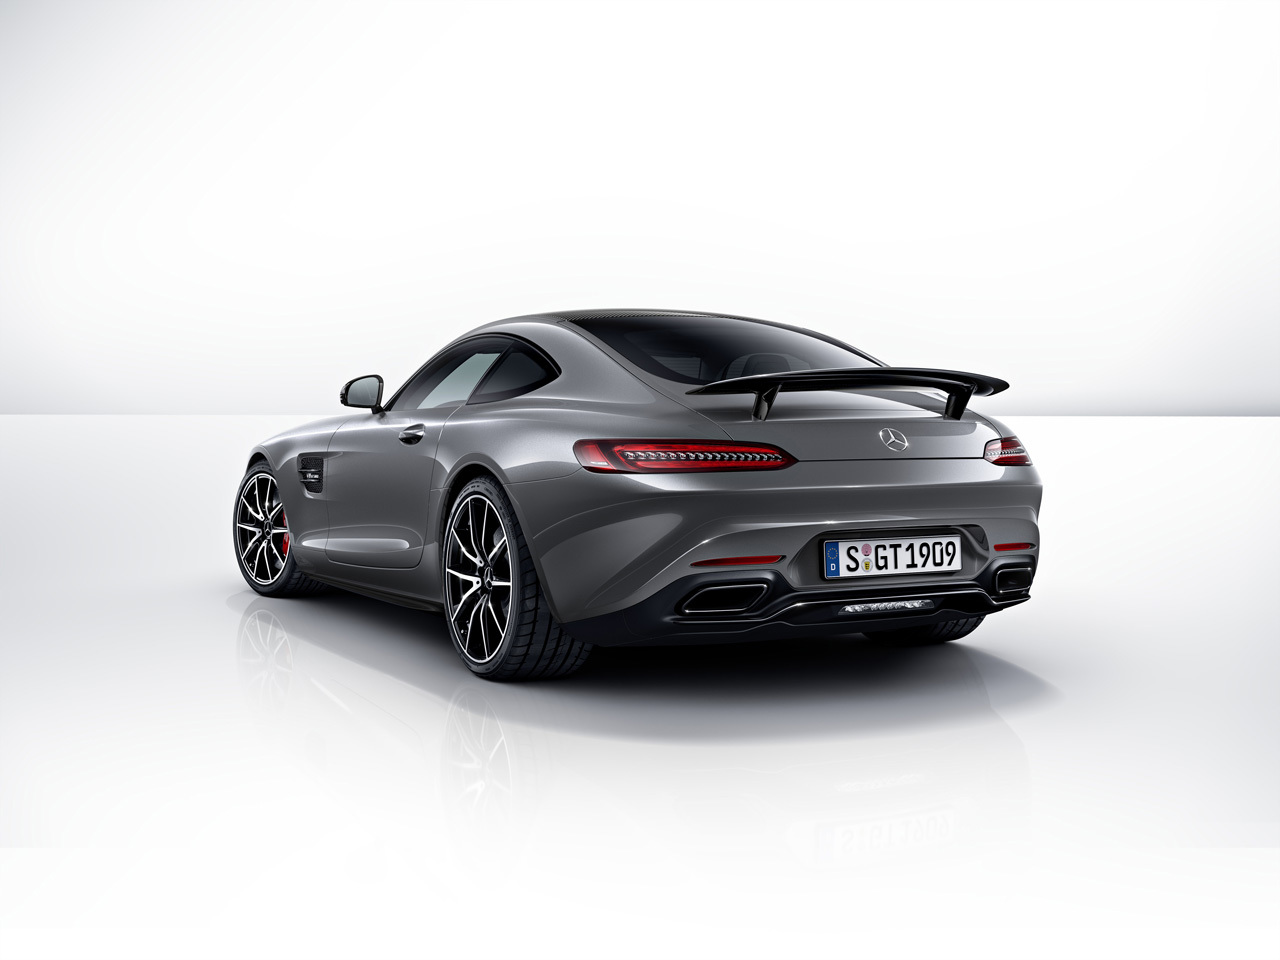 Mercedes Amg Gt S Edition 1 3 10